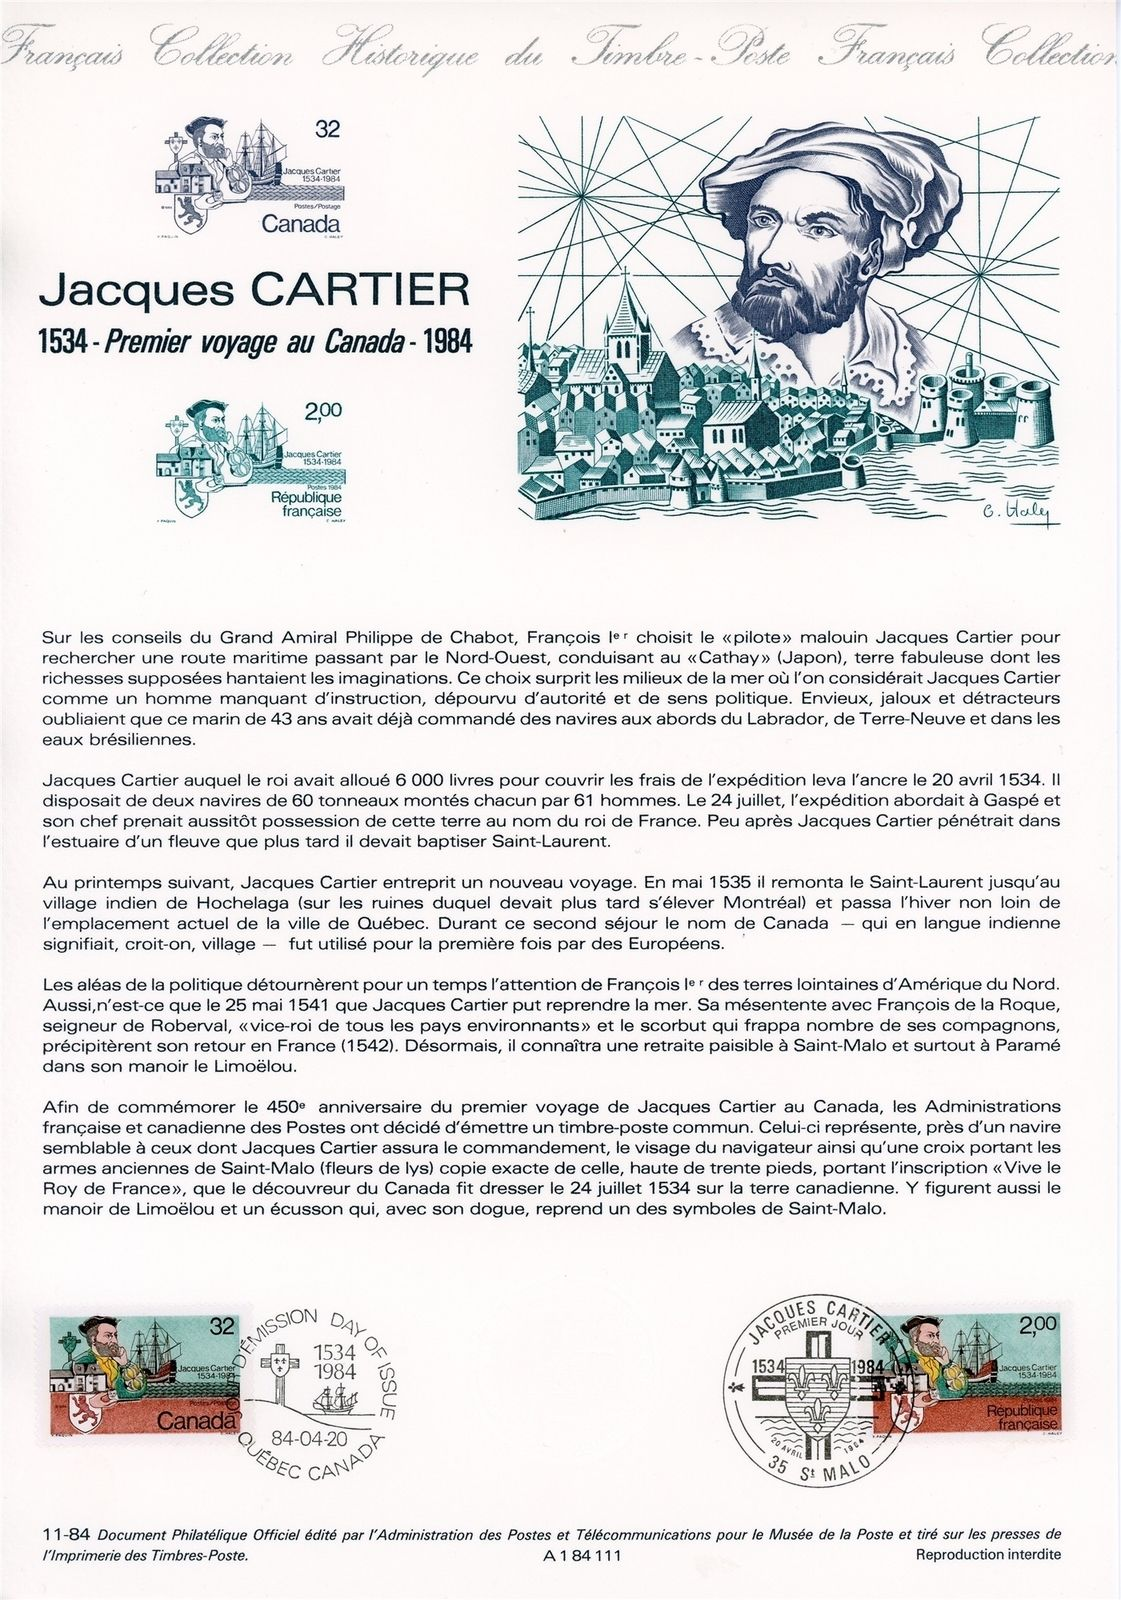 Information sheet bearing copies of the joint issue of Jacques Cartier stamps issued in 1984 by Canada - Scott #1101 - and France - Scott #1923.